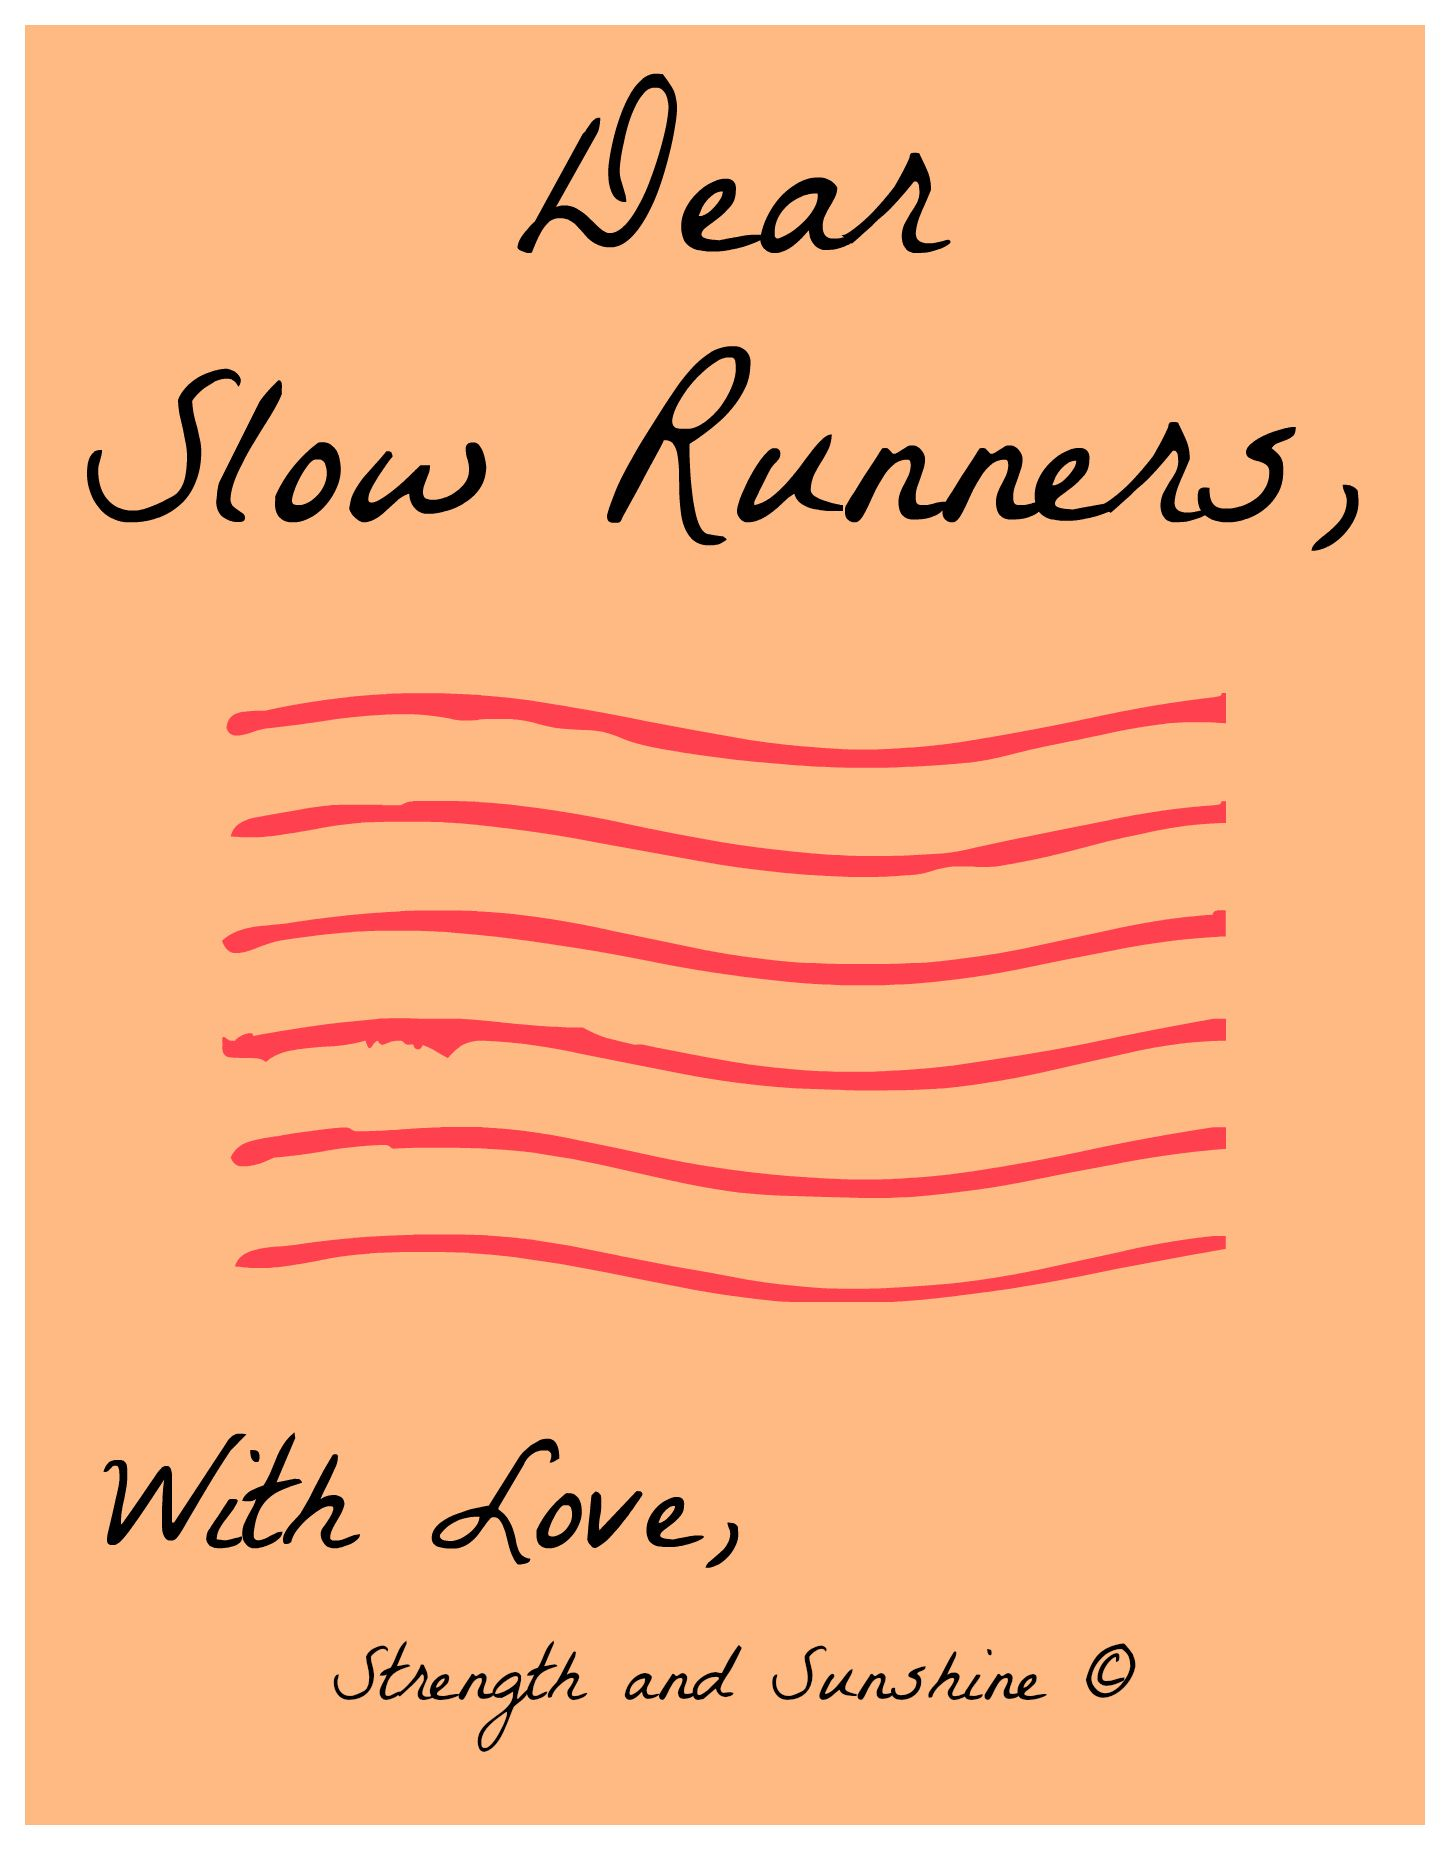 Dear Slow Runners, Let me start this off by letting you know just how awesome I think you are. We (yes, I'm a slow runner too) are part of an exclusive pact which I'm very proud to be a part of. Th...